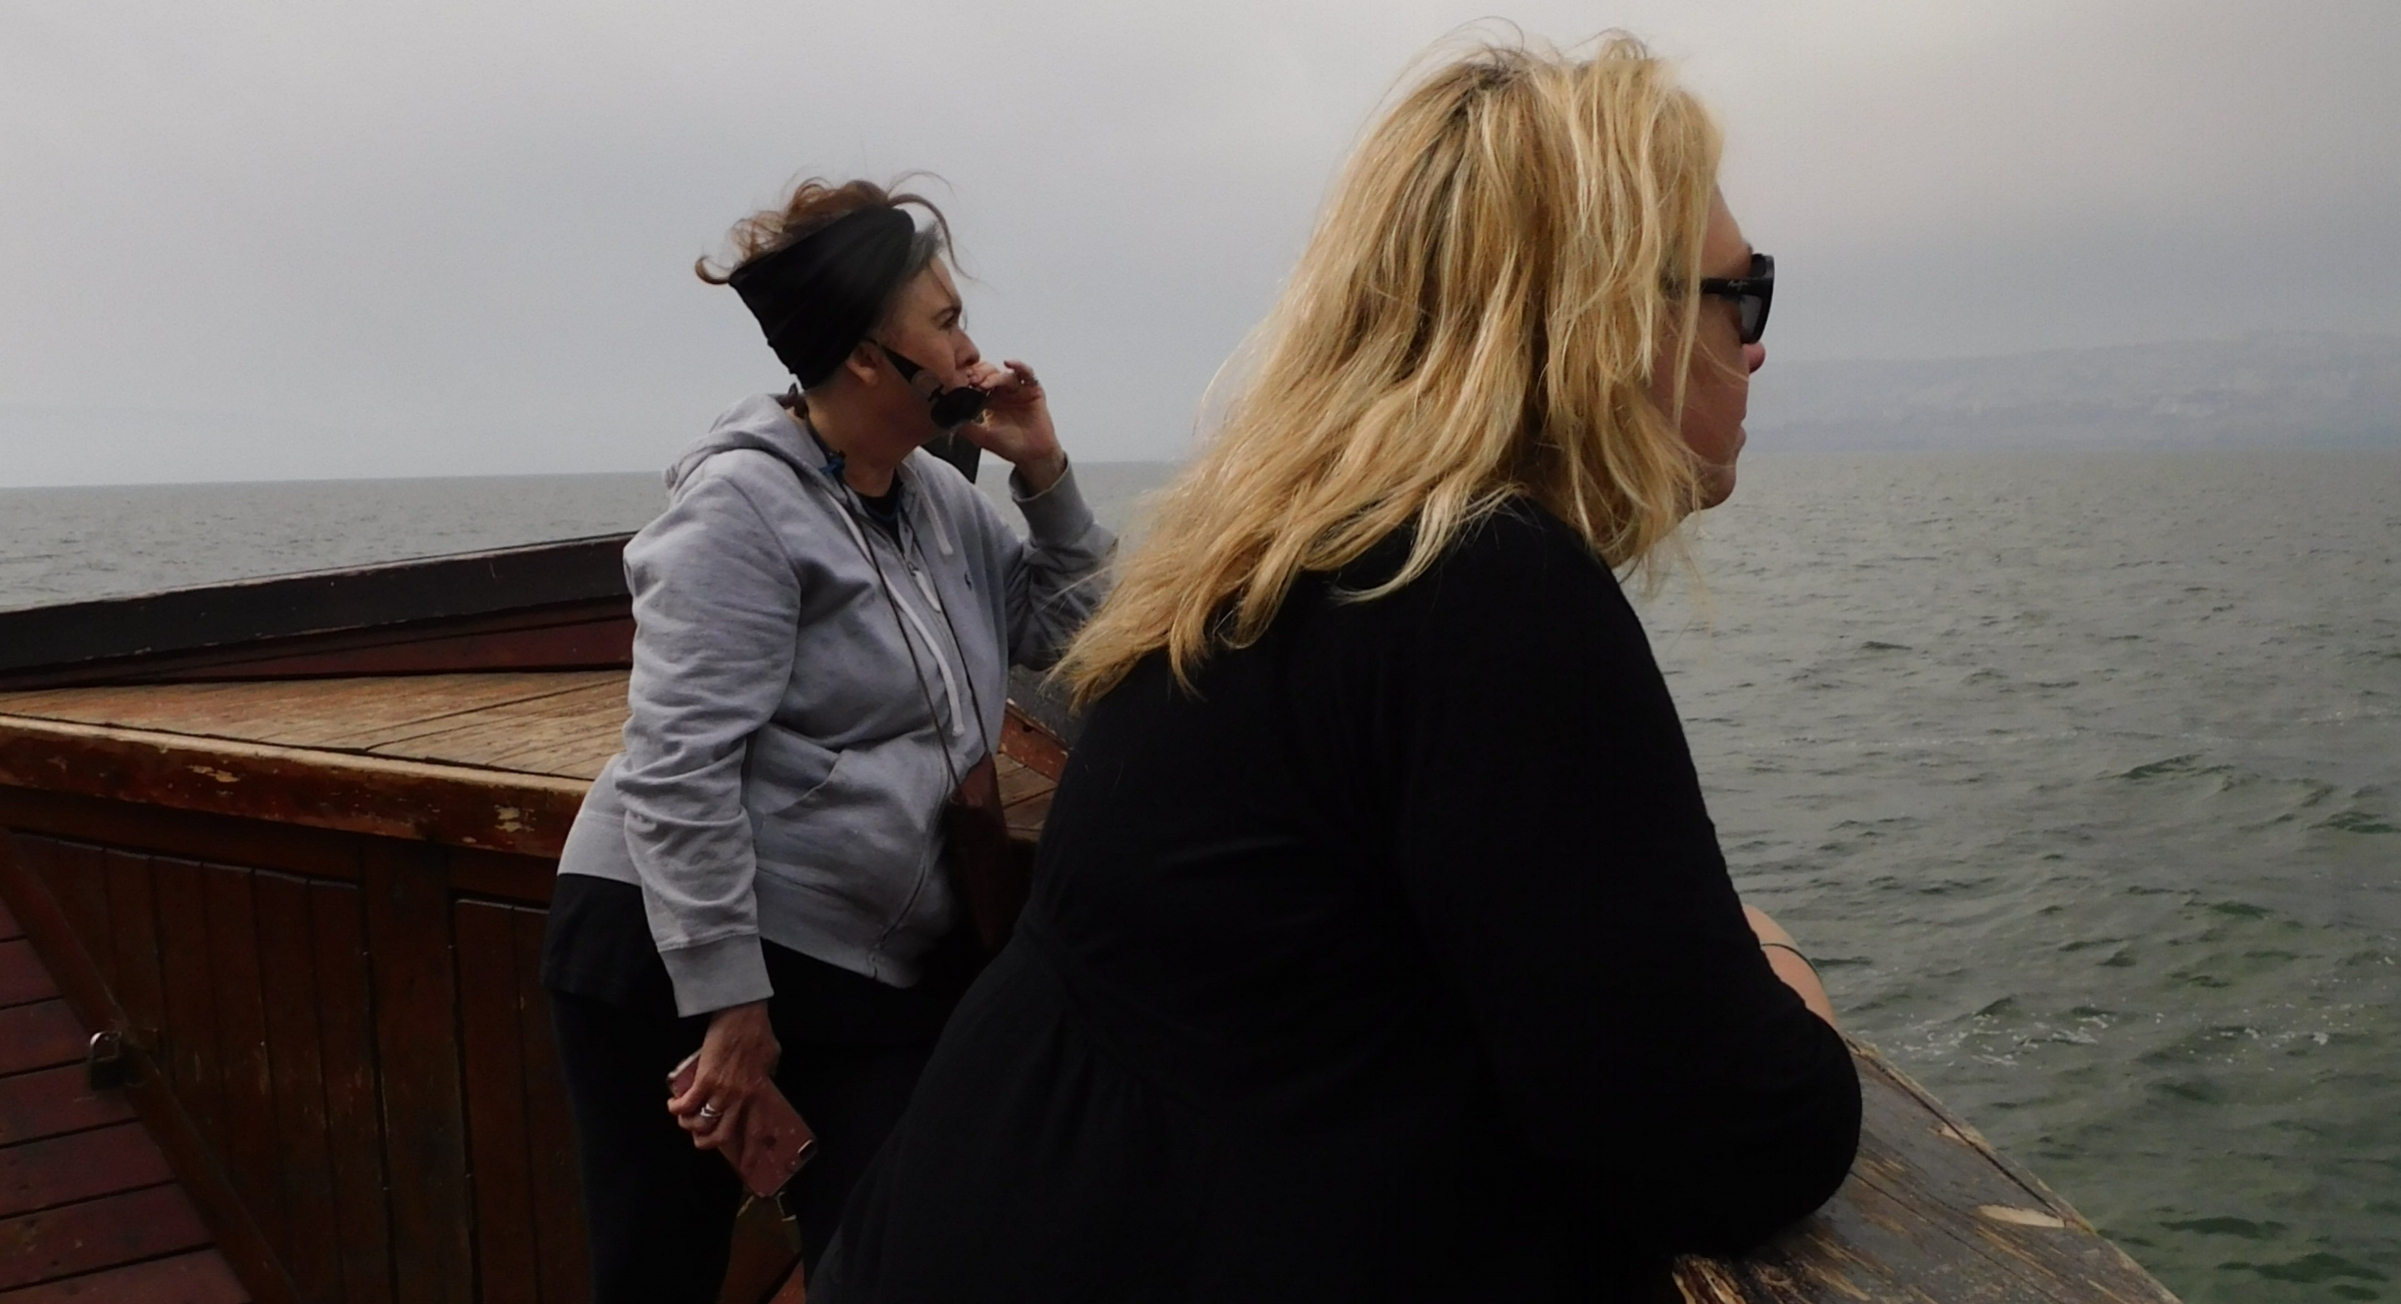 A reflective moment on the Sea of Galilee